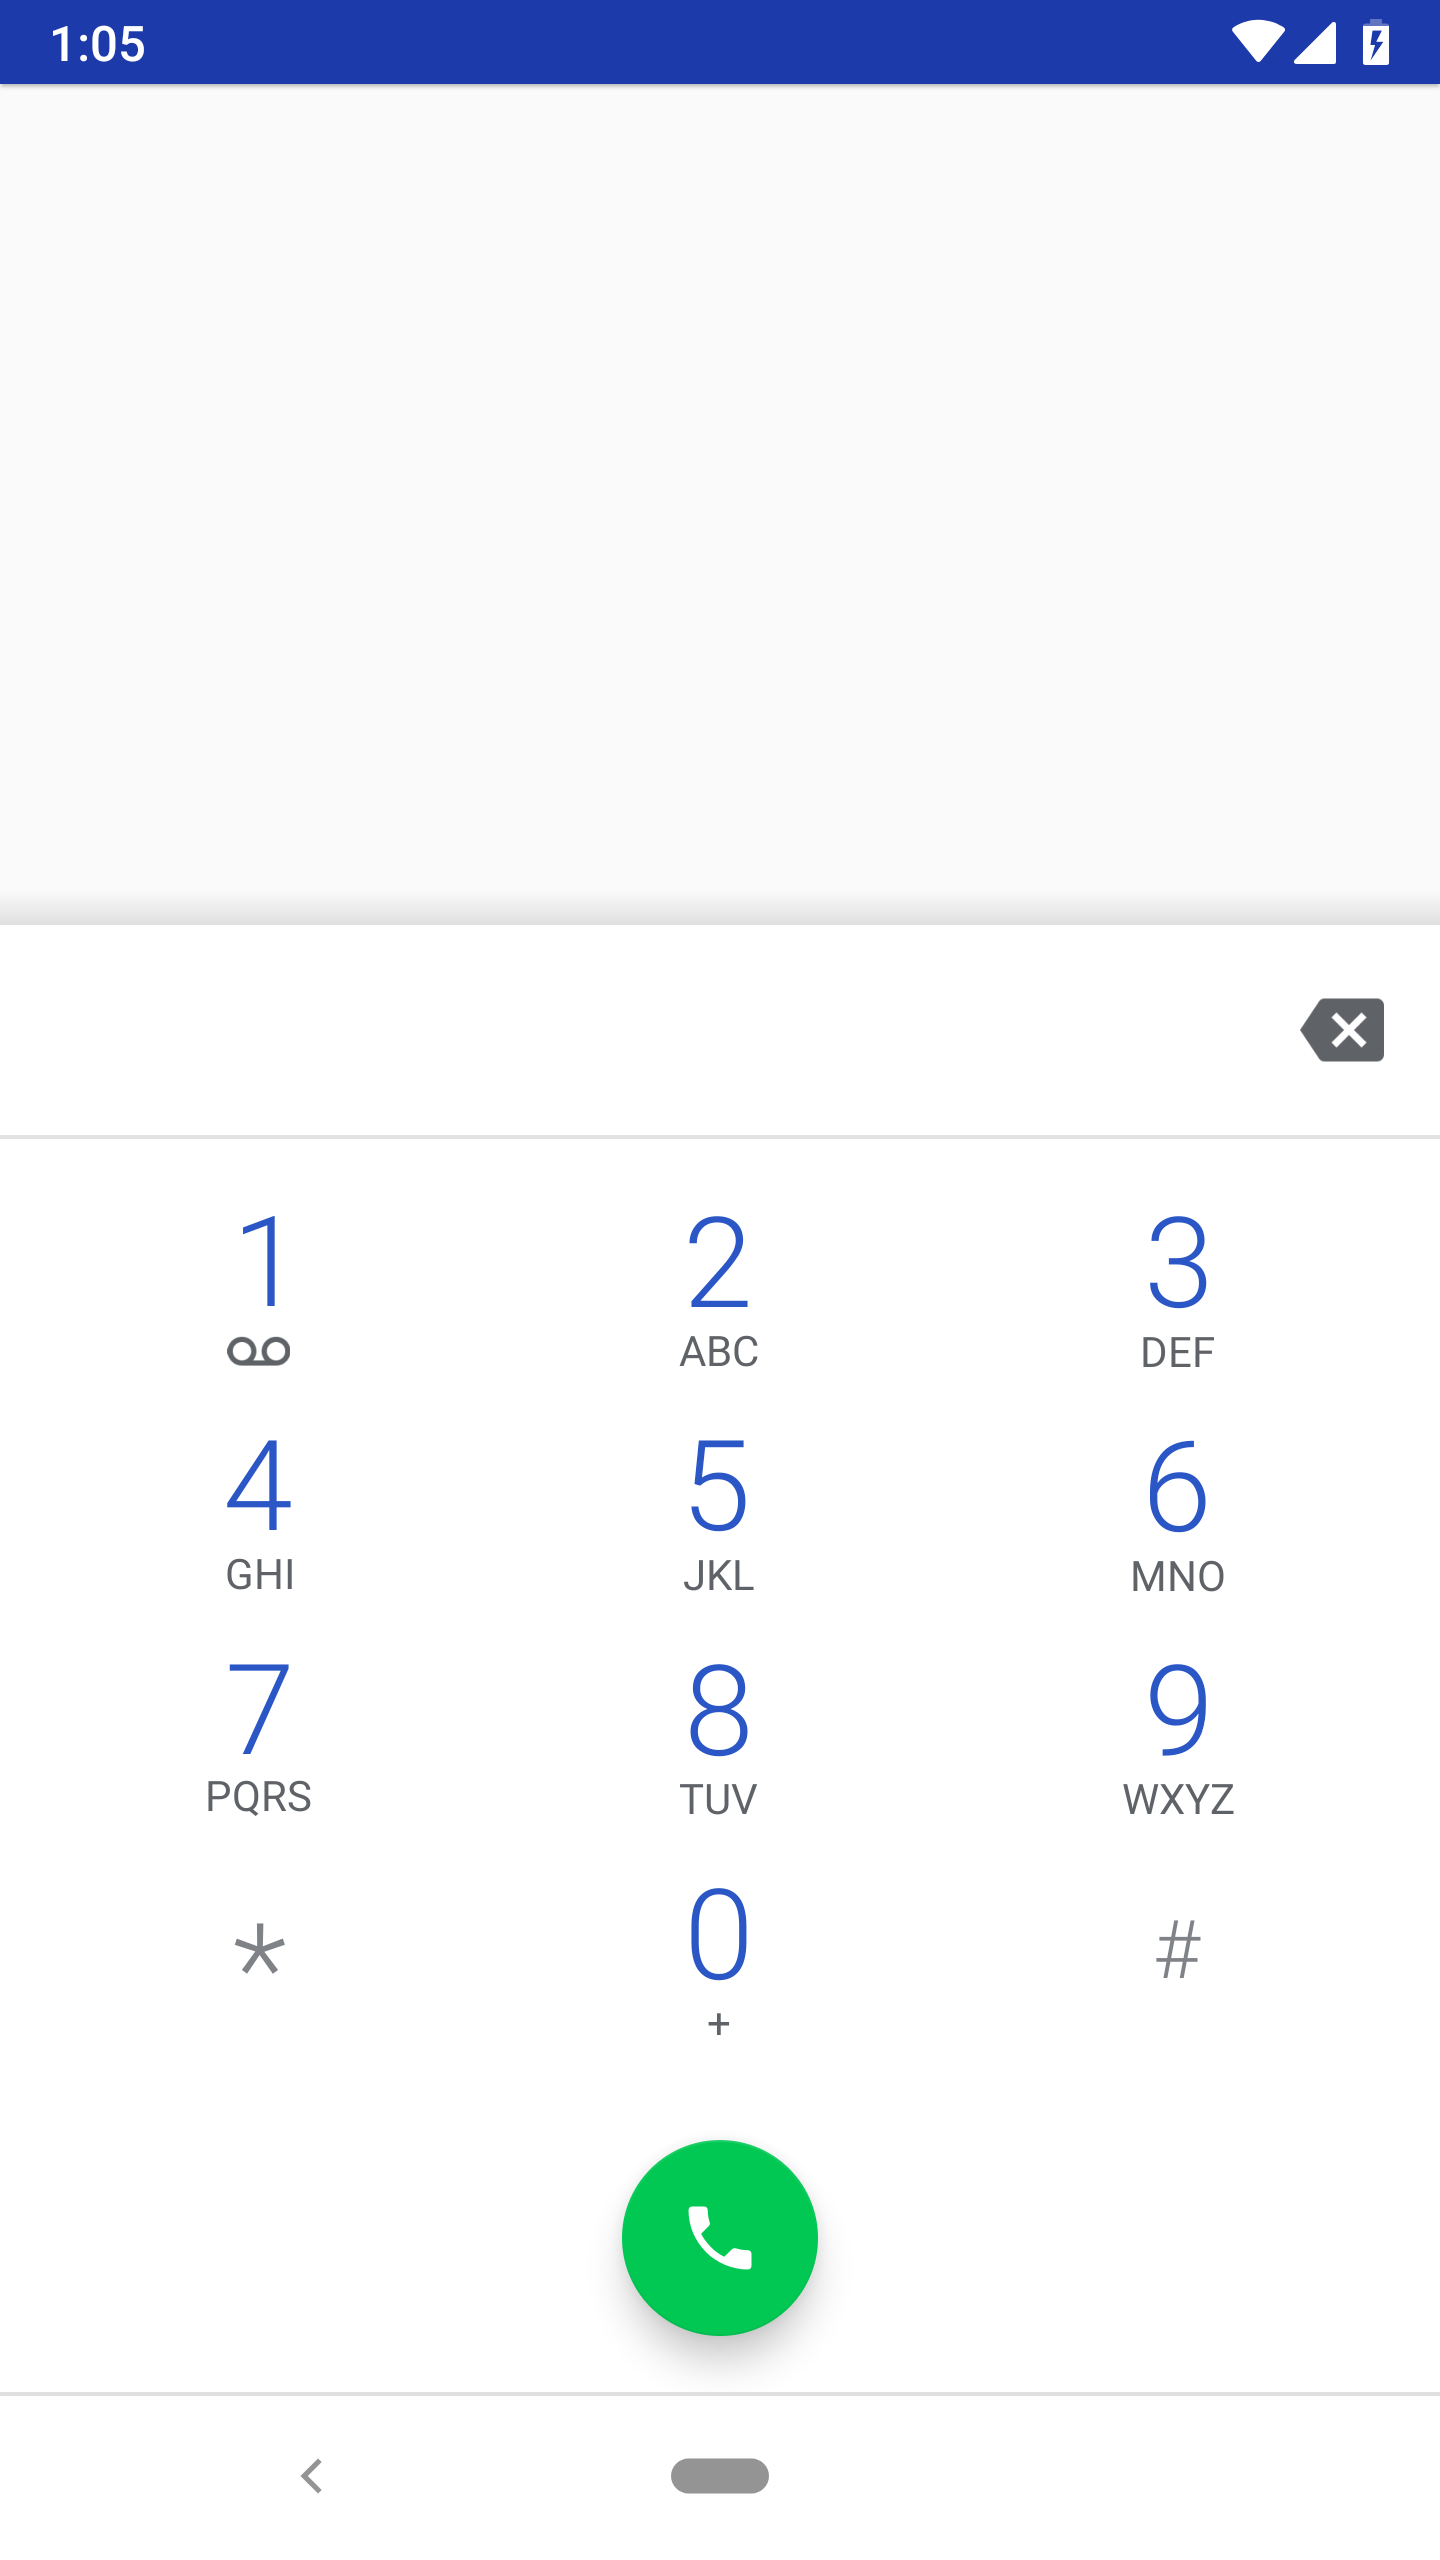 Google Phone v23 brings an updated Material UI to match